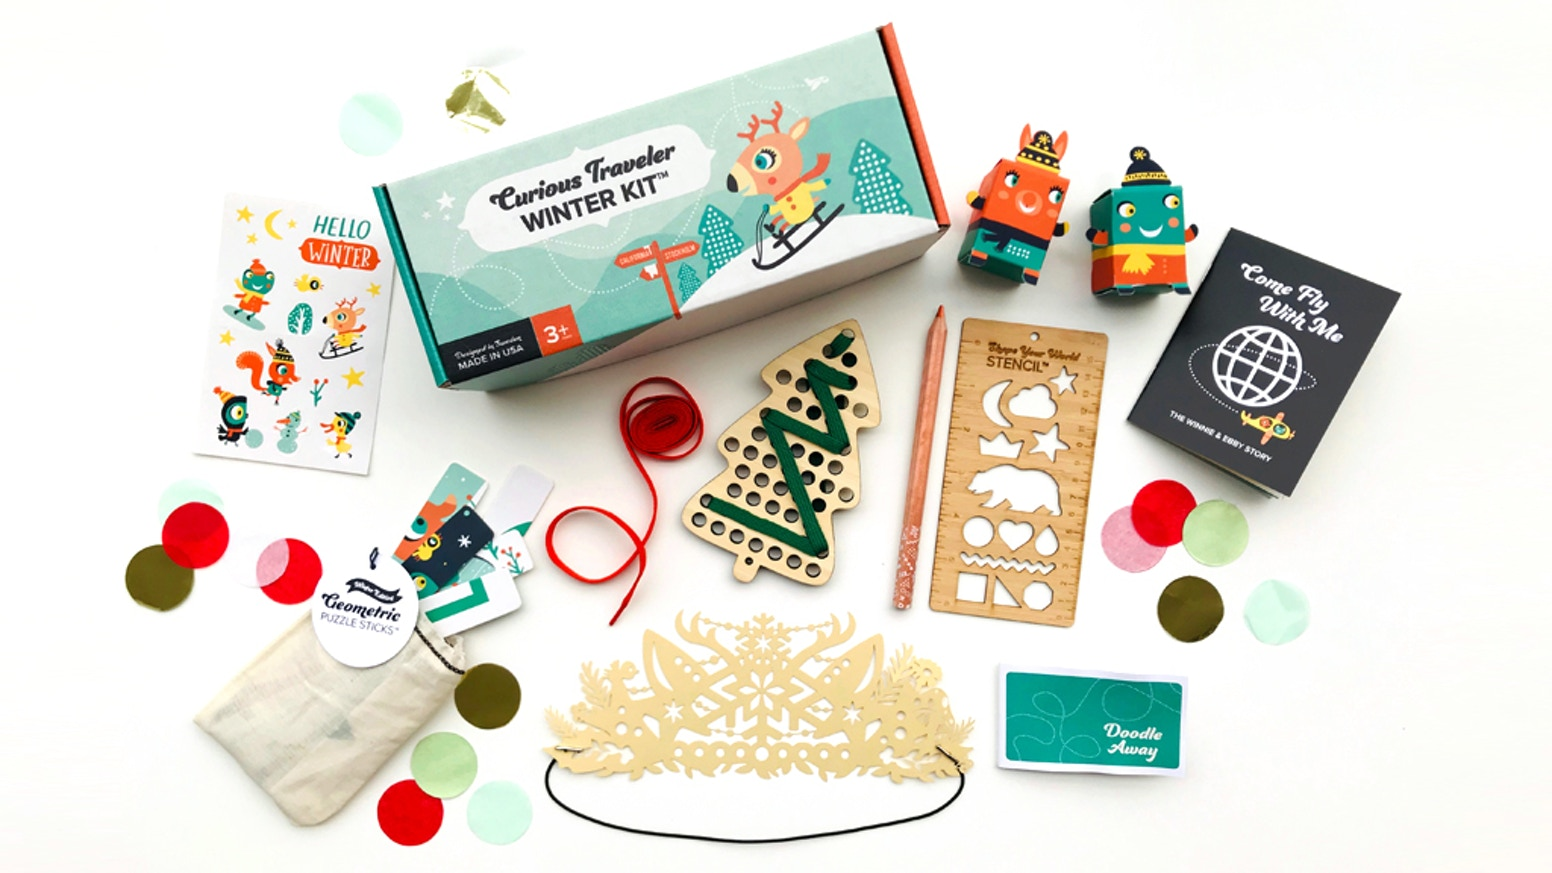 Eco-friendly and imaginative travel kits, that inspire creative play, develop important skills and engage kids while they're on the go.